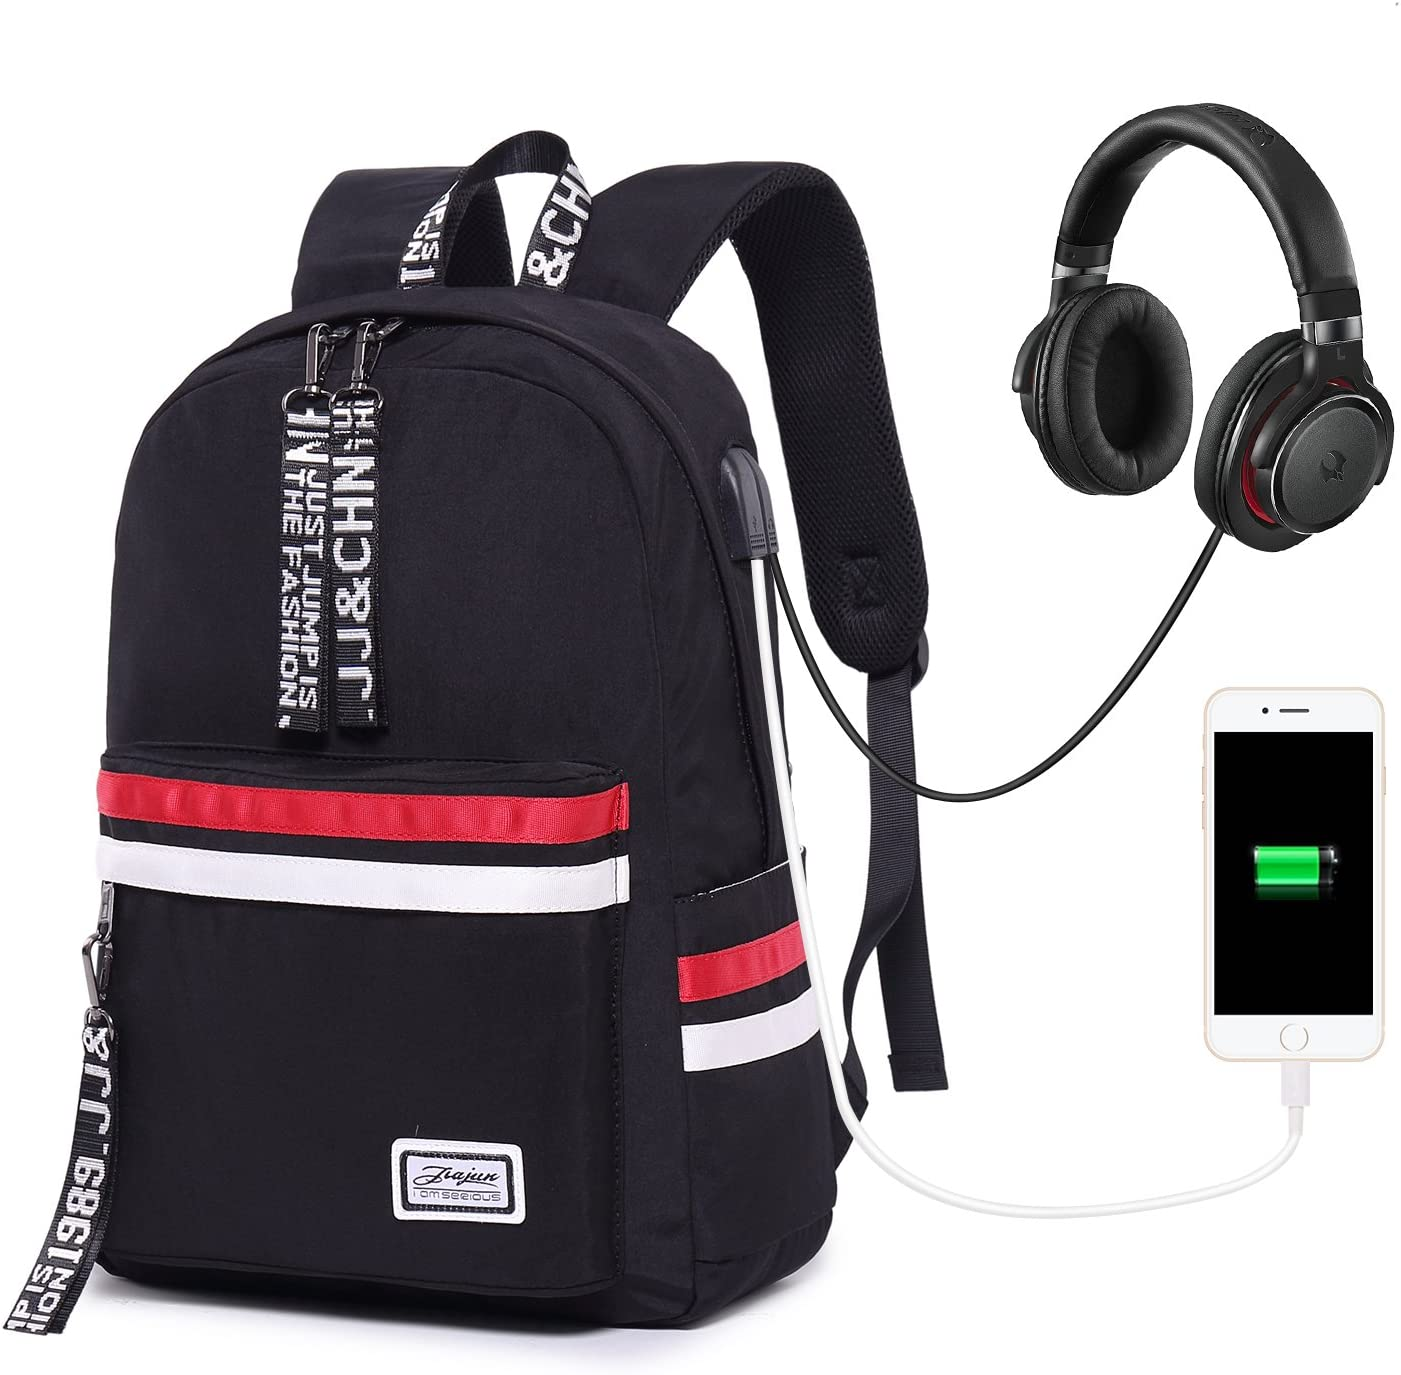 School Backpack Teen Girls Bookbag for Laptop Book Bag Travel Rucksack Daypack for Men Women Boys Girls Black with USB Port Headphone Jack